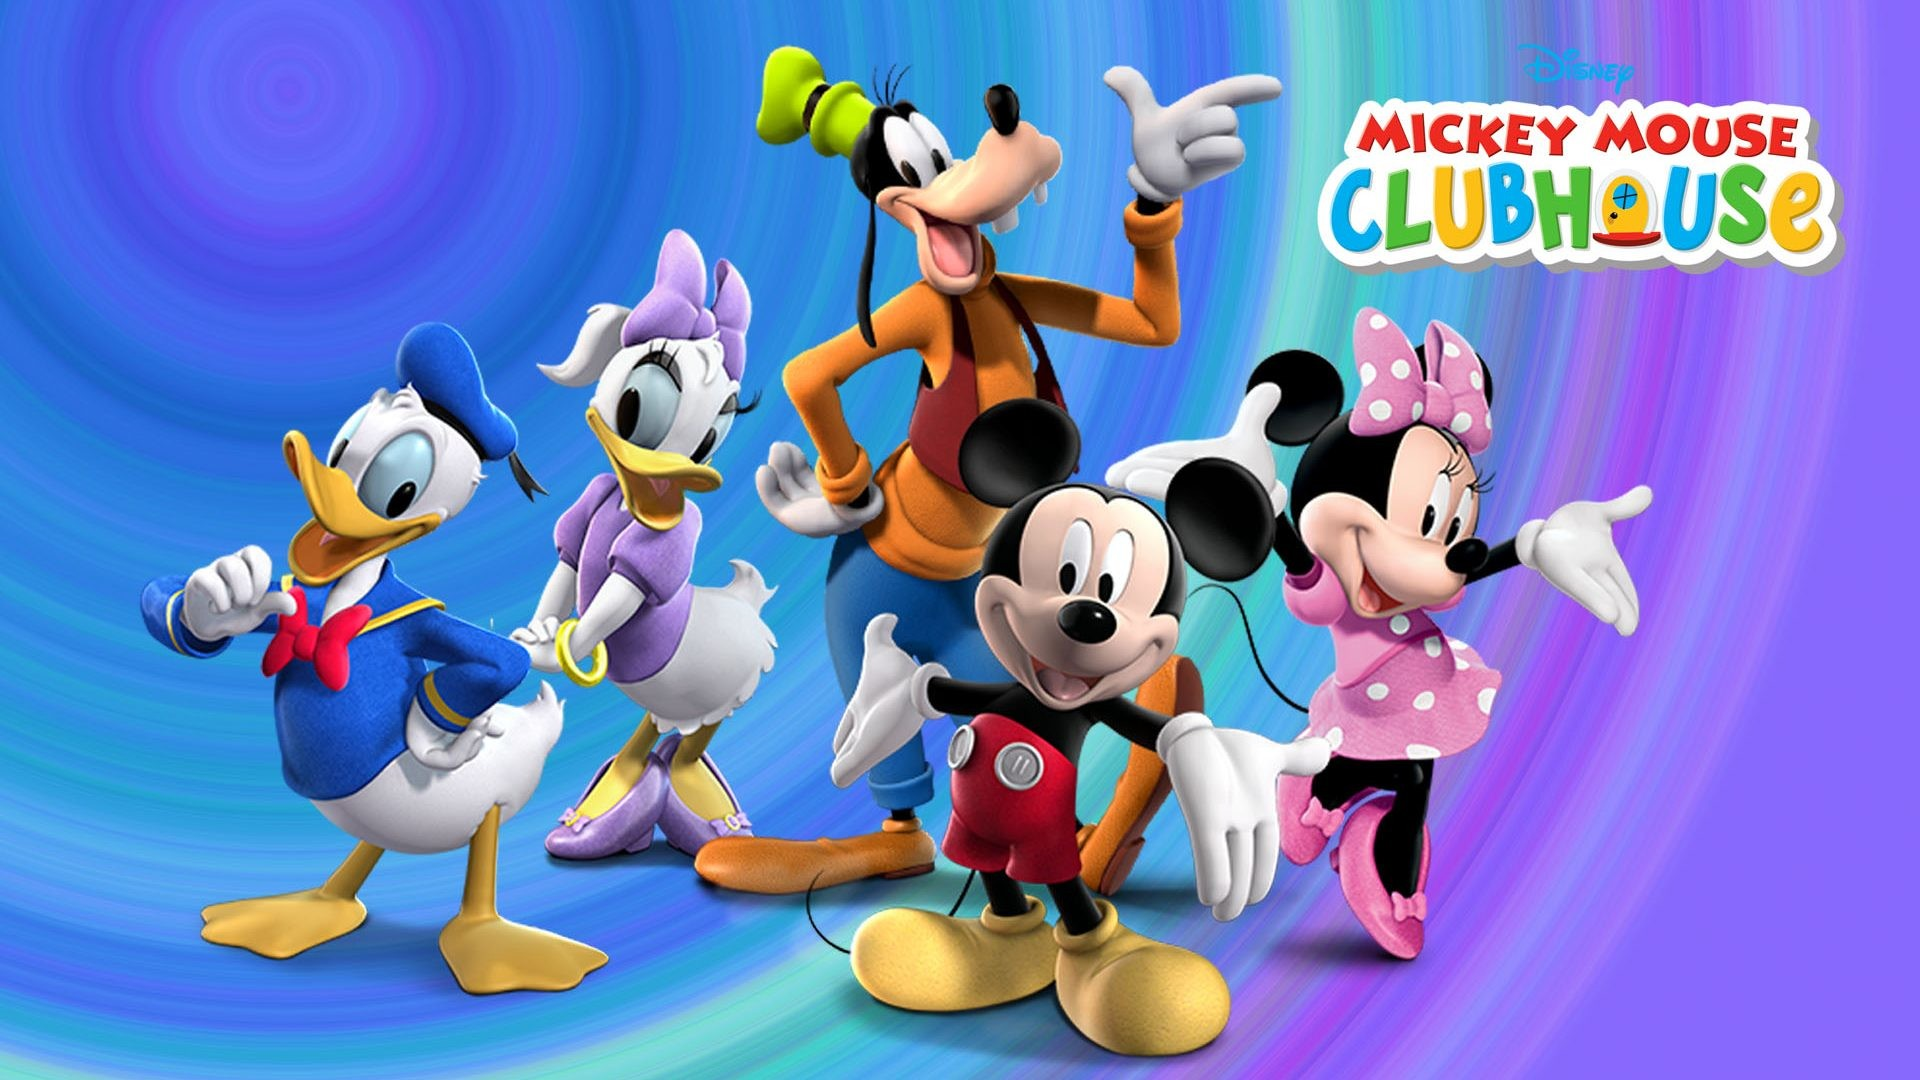 48 mickey mouse clubhouse images 48 mickey mouse clubhouse images